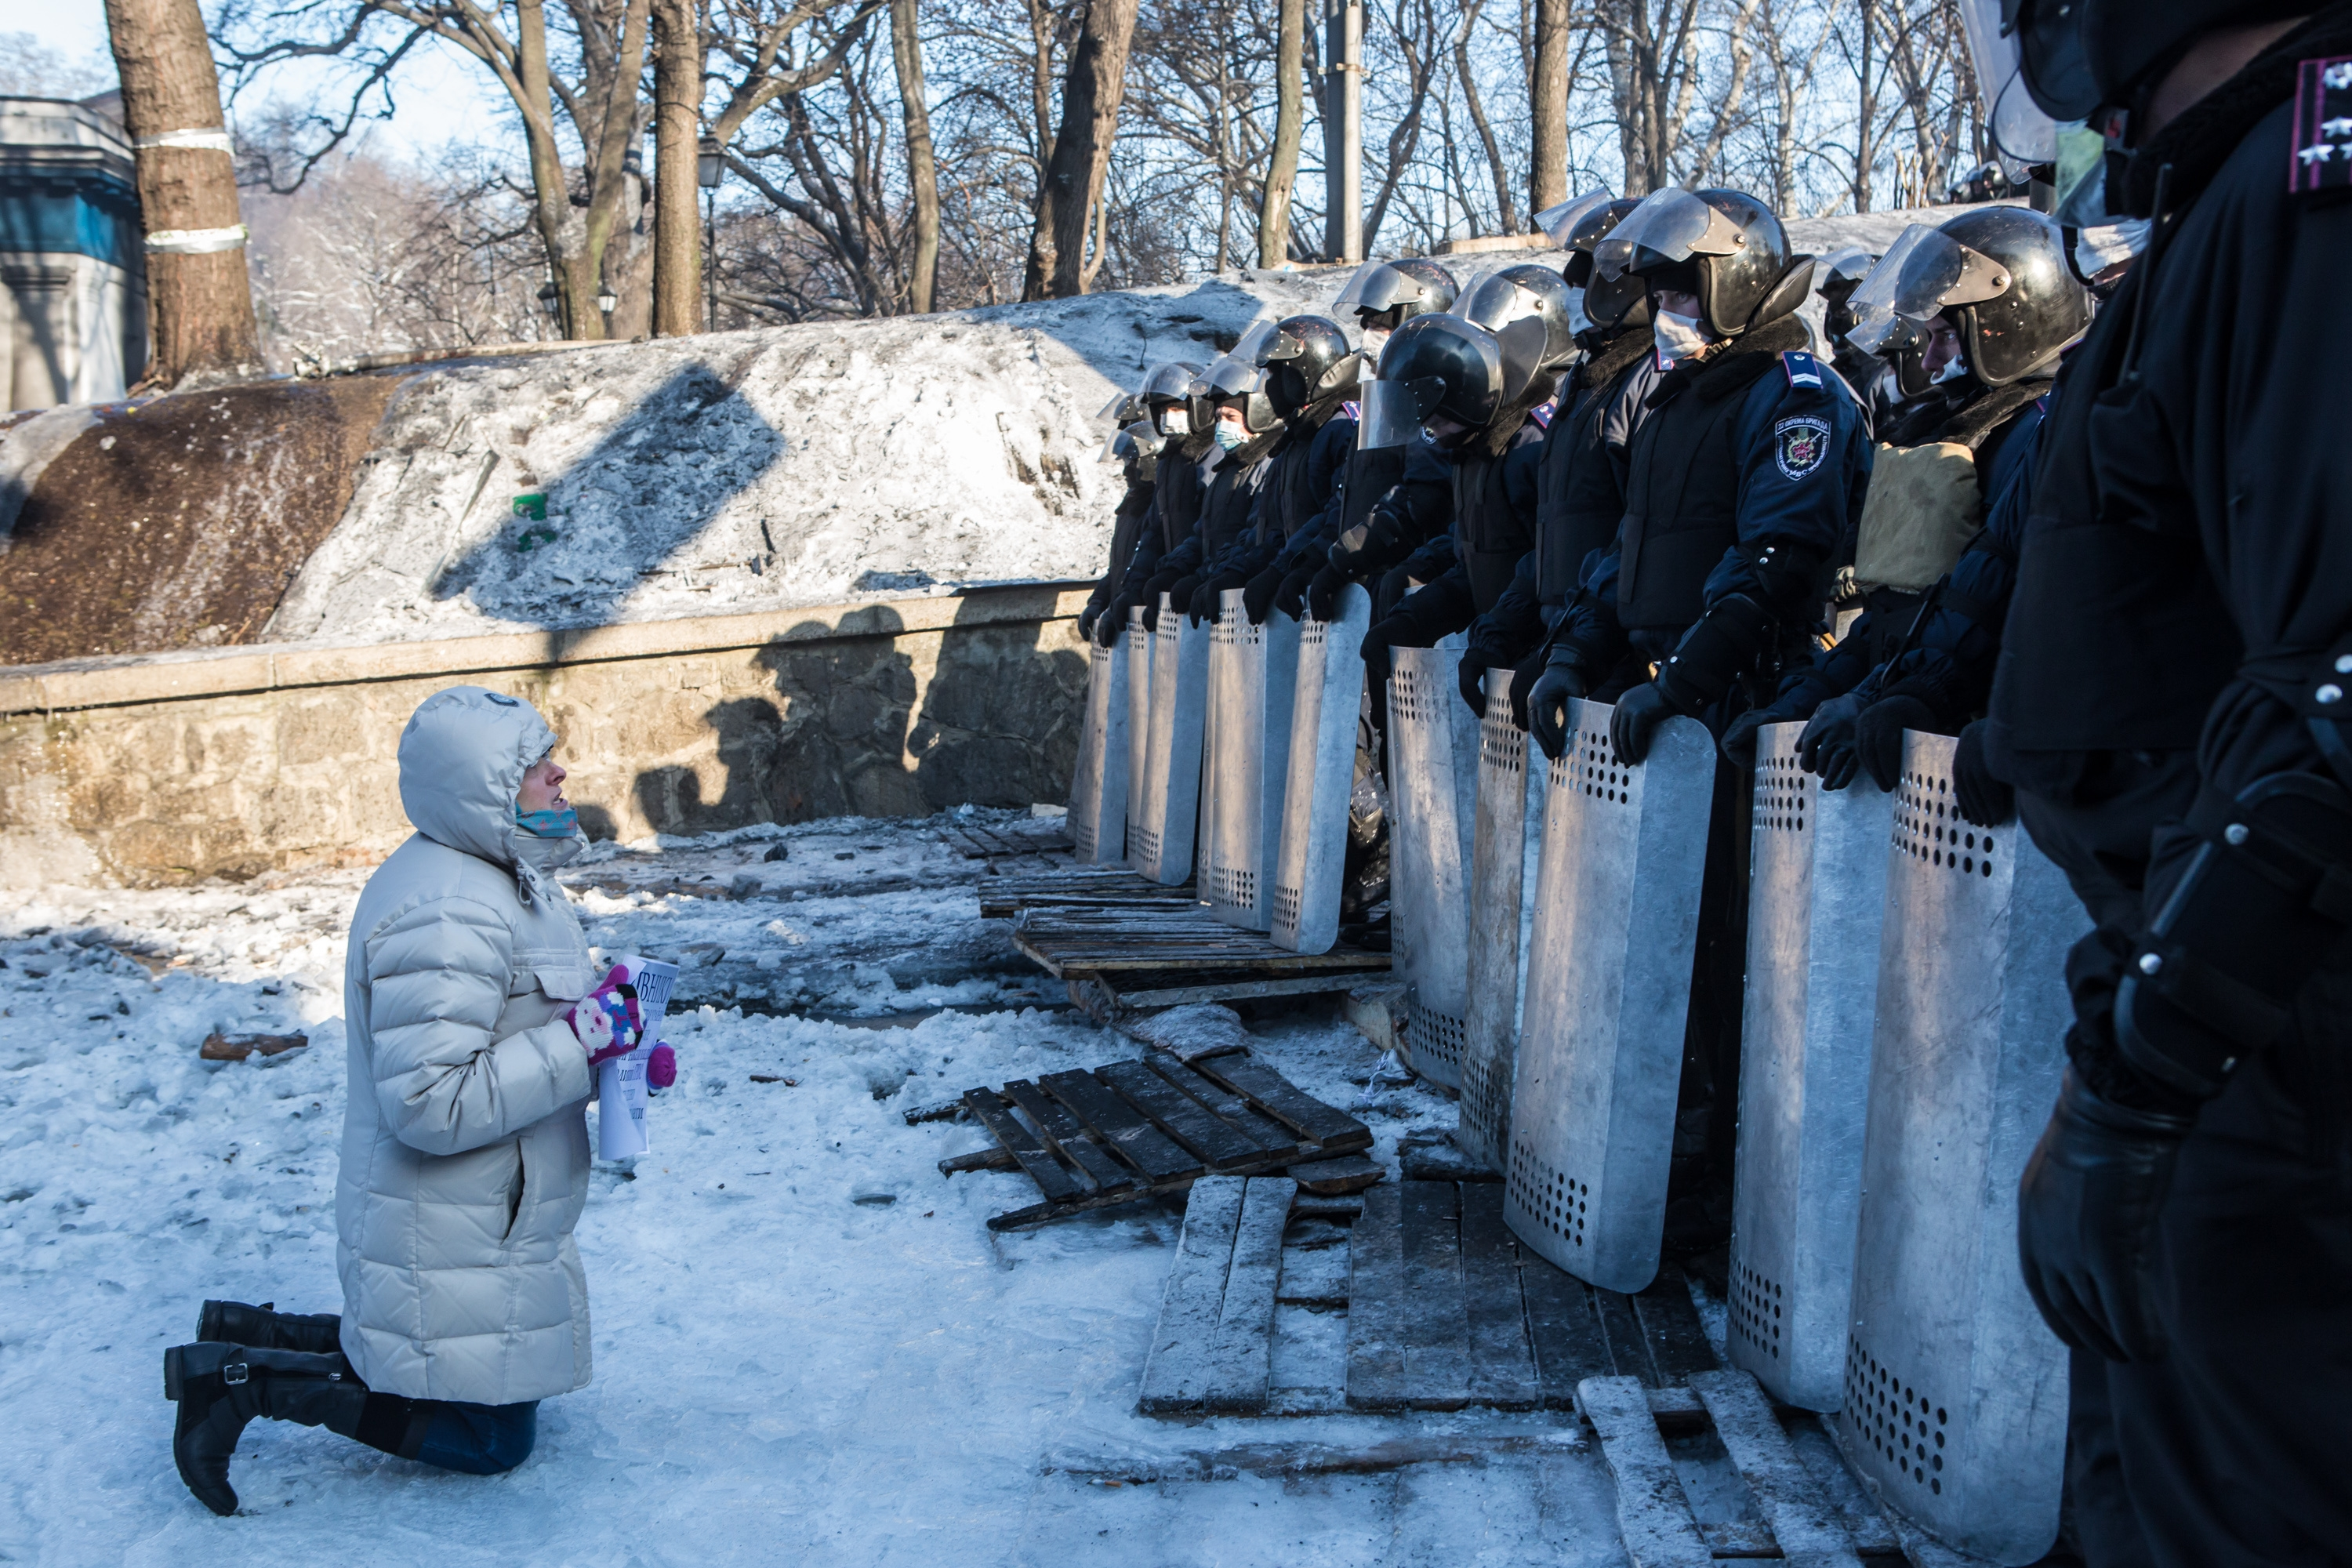 A woman prays in front of a line of police officers Friday on the street near the Cabinet of Ministers building and Dynamo stadium in Kiev, Ukraine.